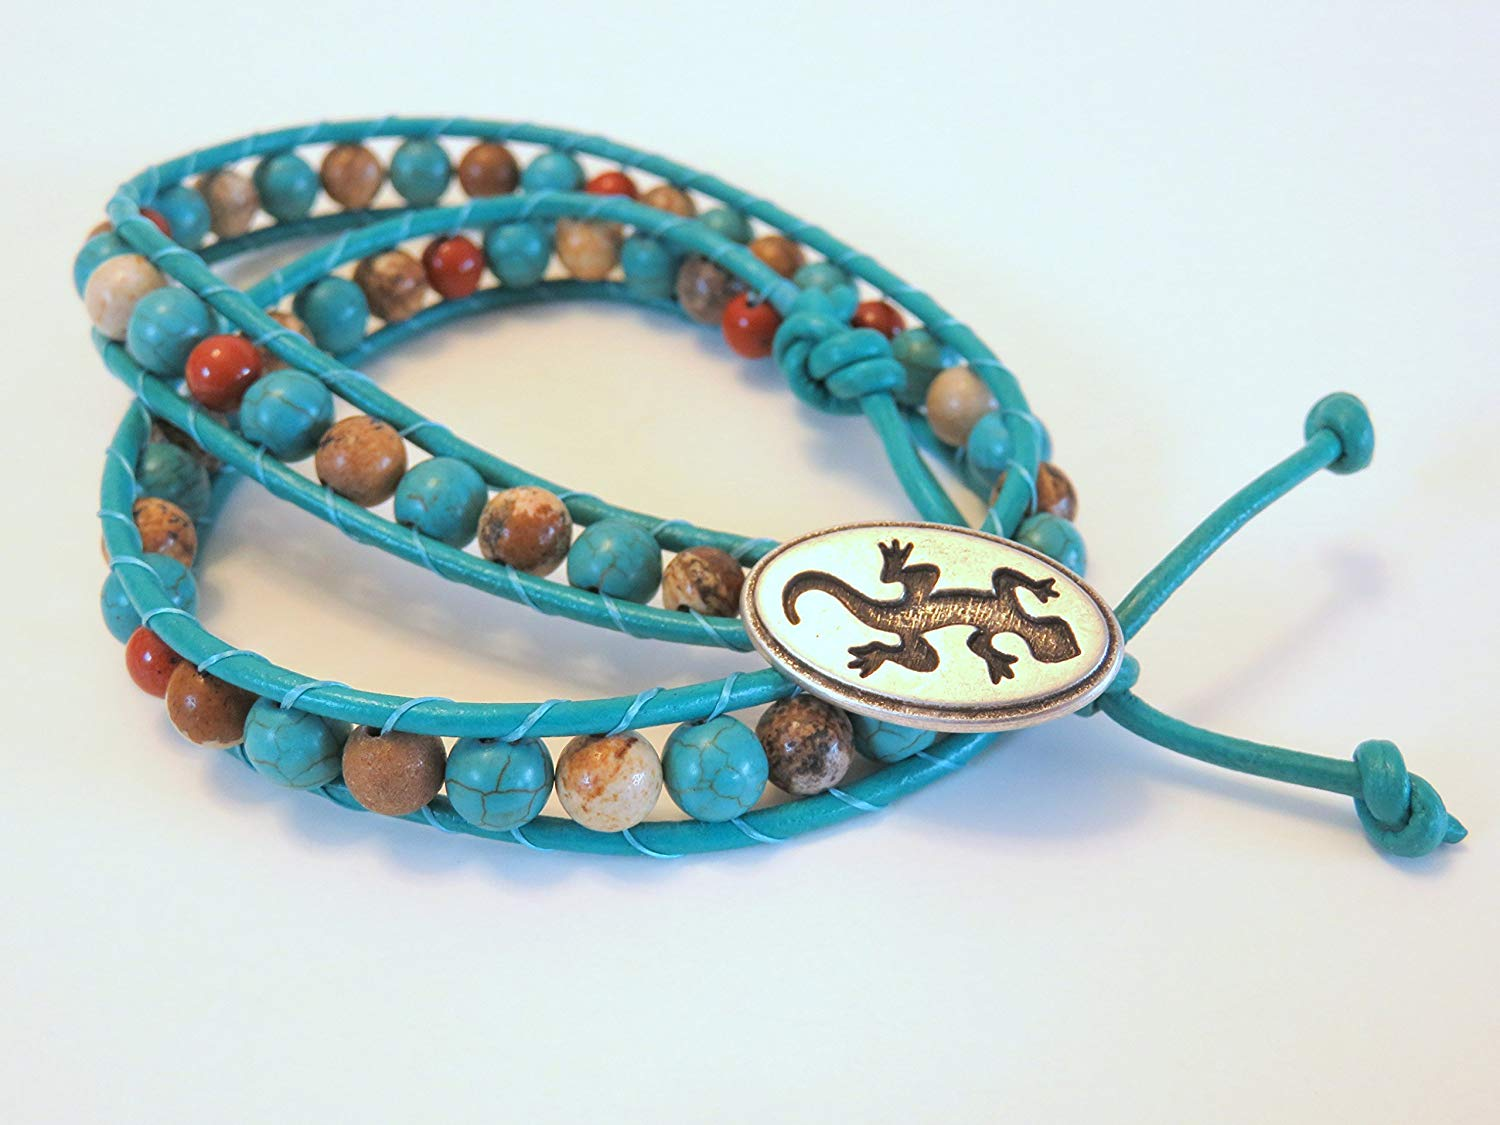 Turquoise Leather Wrap with Natural Jasper Stones and a Pewter Gecko Clasp